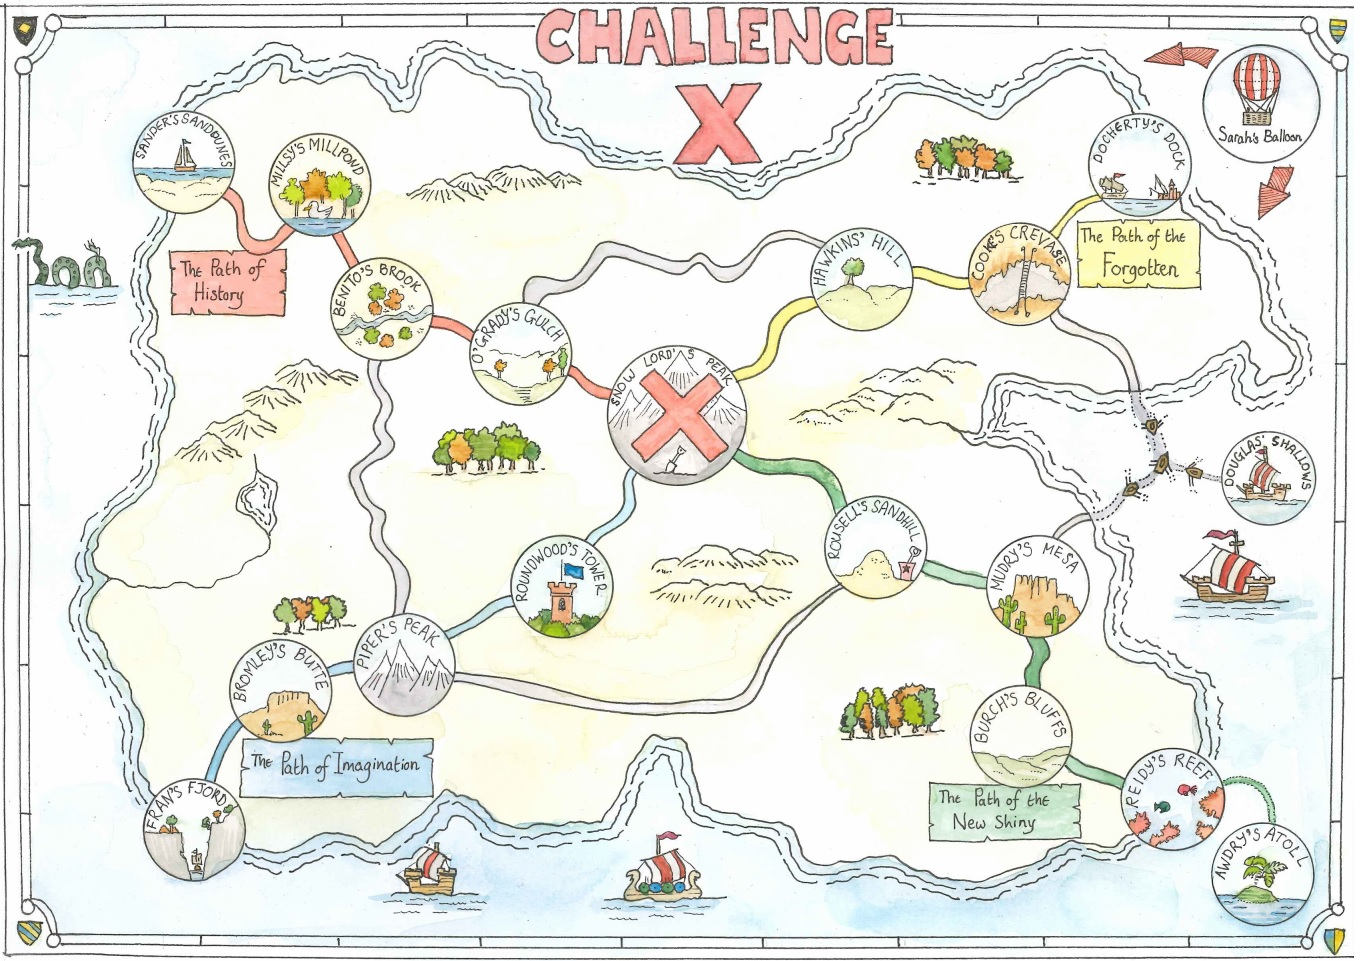 Come Adventure on Challenge Island!